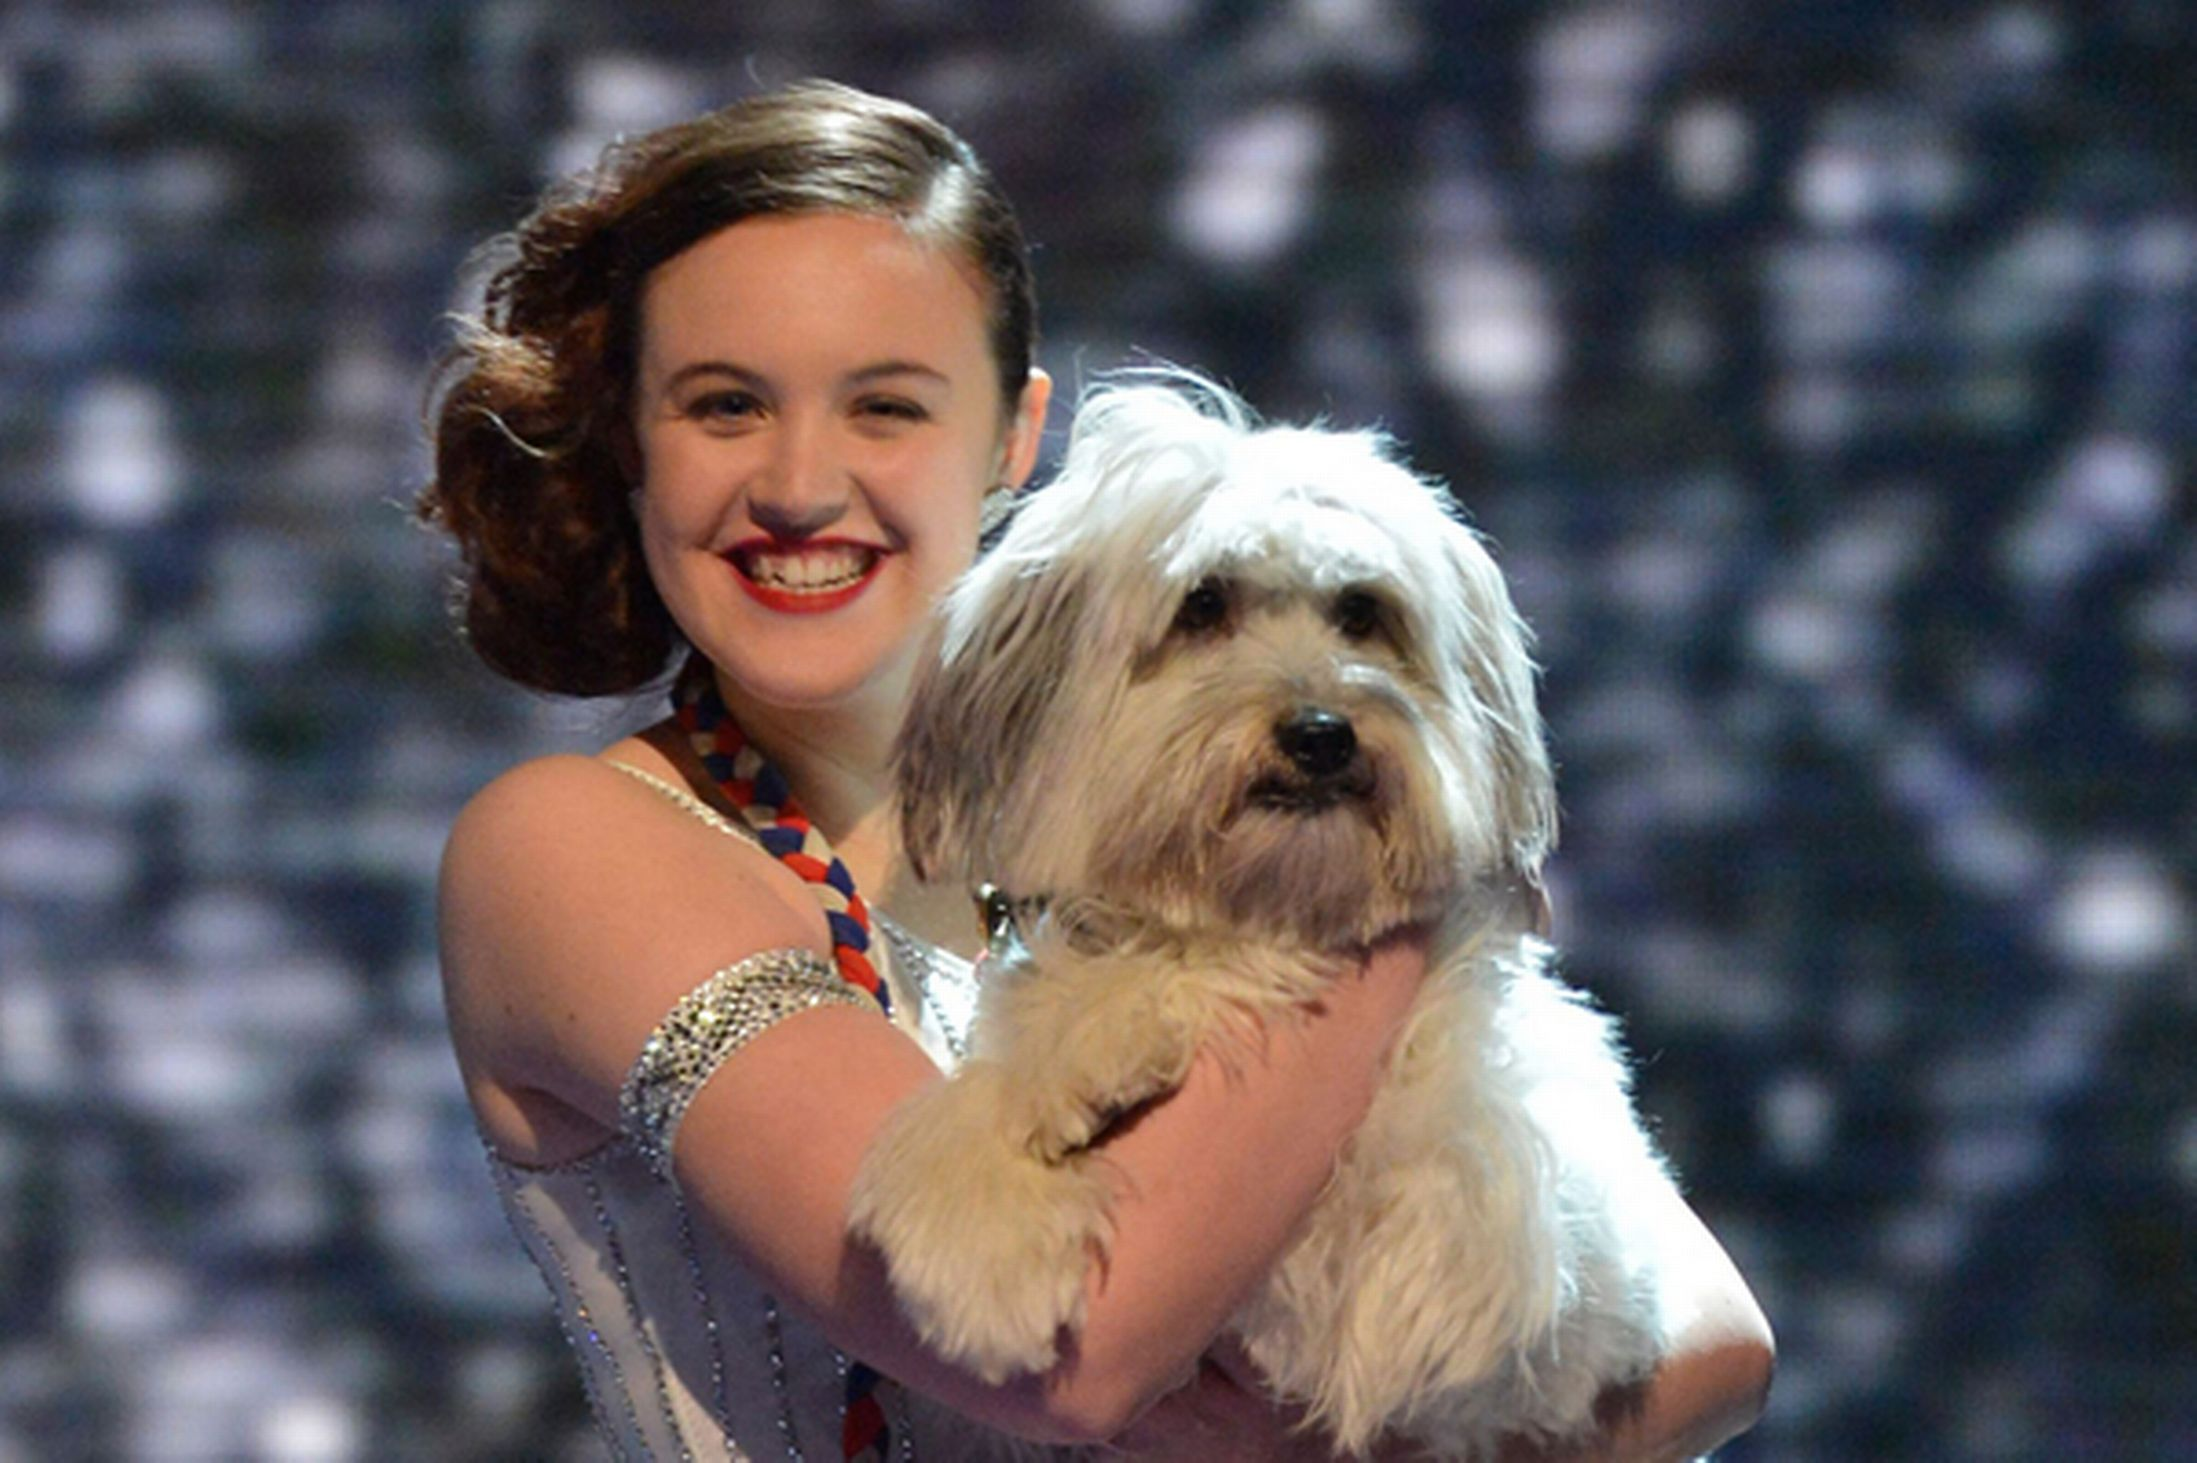 David Walliams pays tribute to Britain's Got Talent victor Pudsey